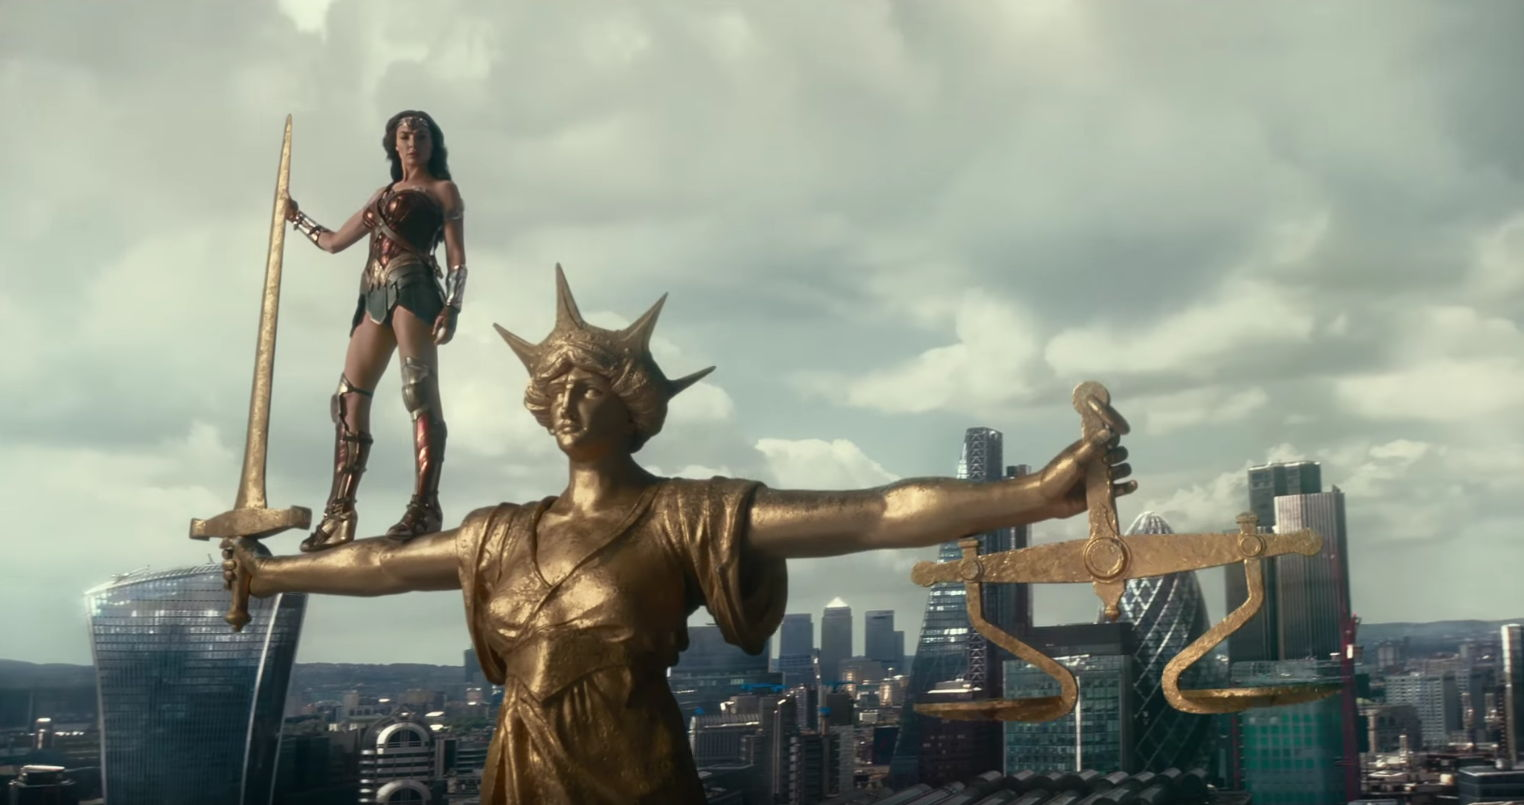 Un nouveau trailer survitaminé — Justice League